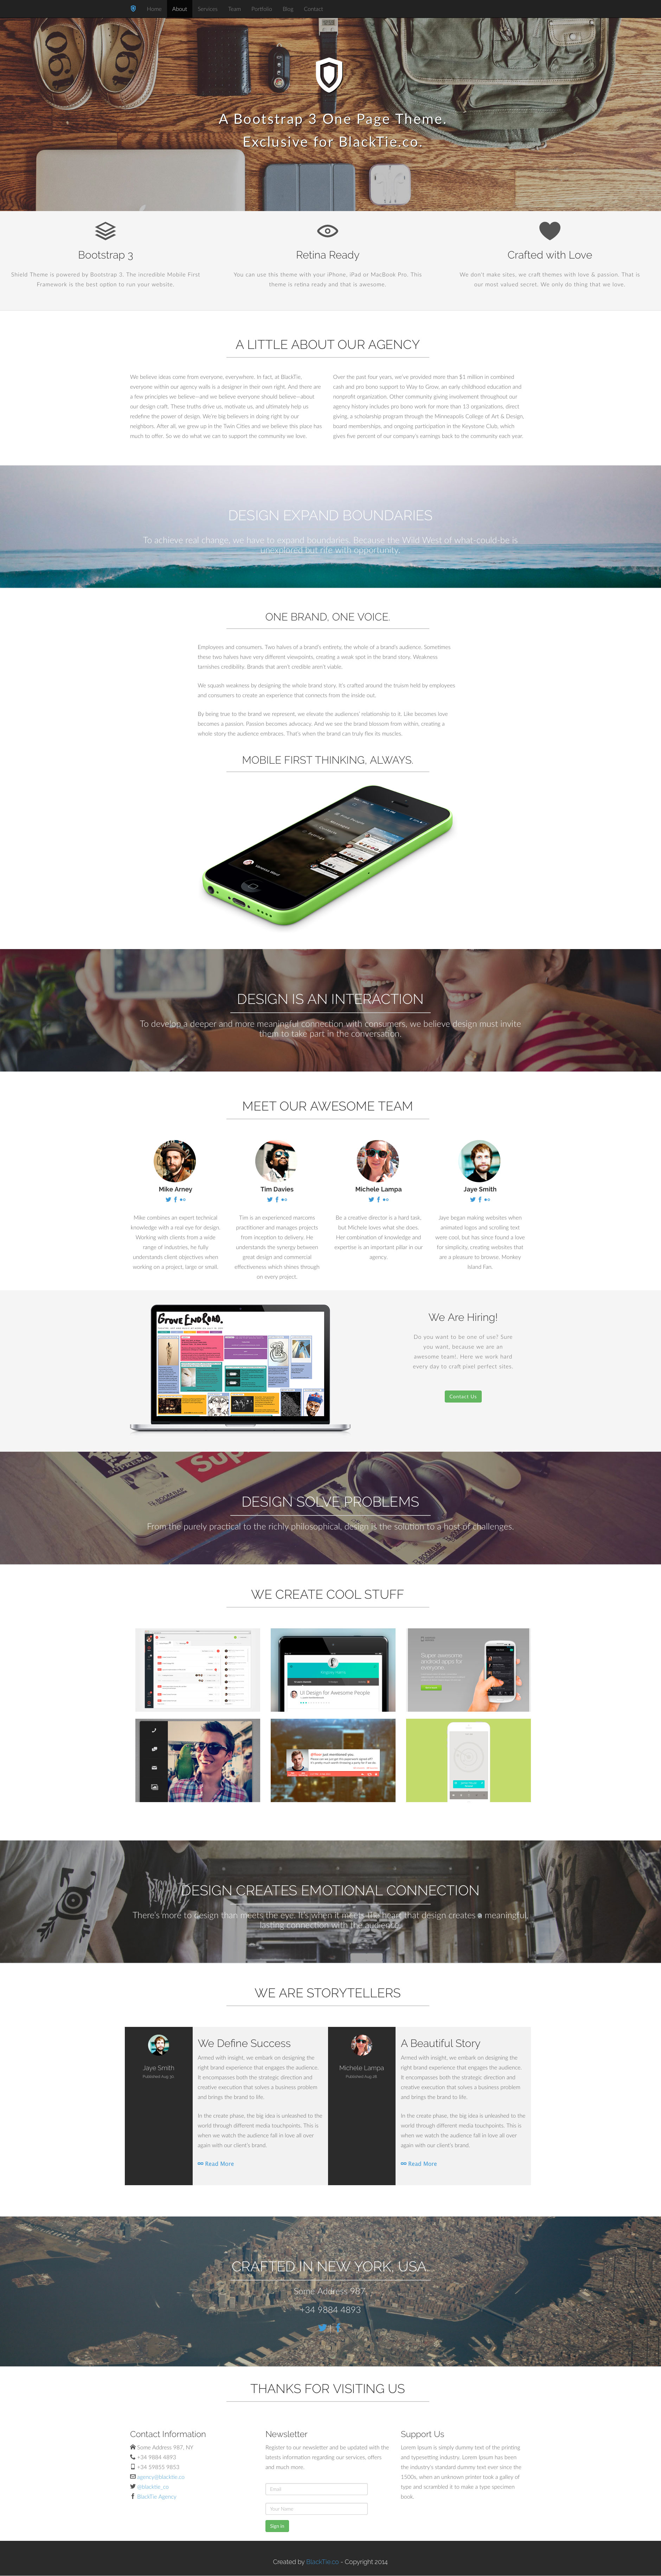 Shield is a free responsive HTML5 one-page website template based on the popular Bootstrap 3 front-end framework. Shield template is ideal choice for agencies and freelancers. It is fully responsive and comes with the latest HTML5 and CSS3 technology.